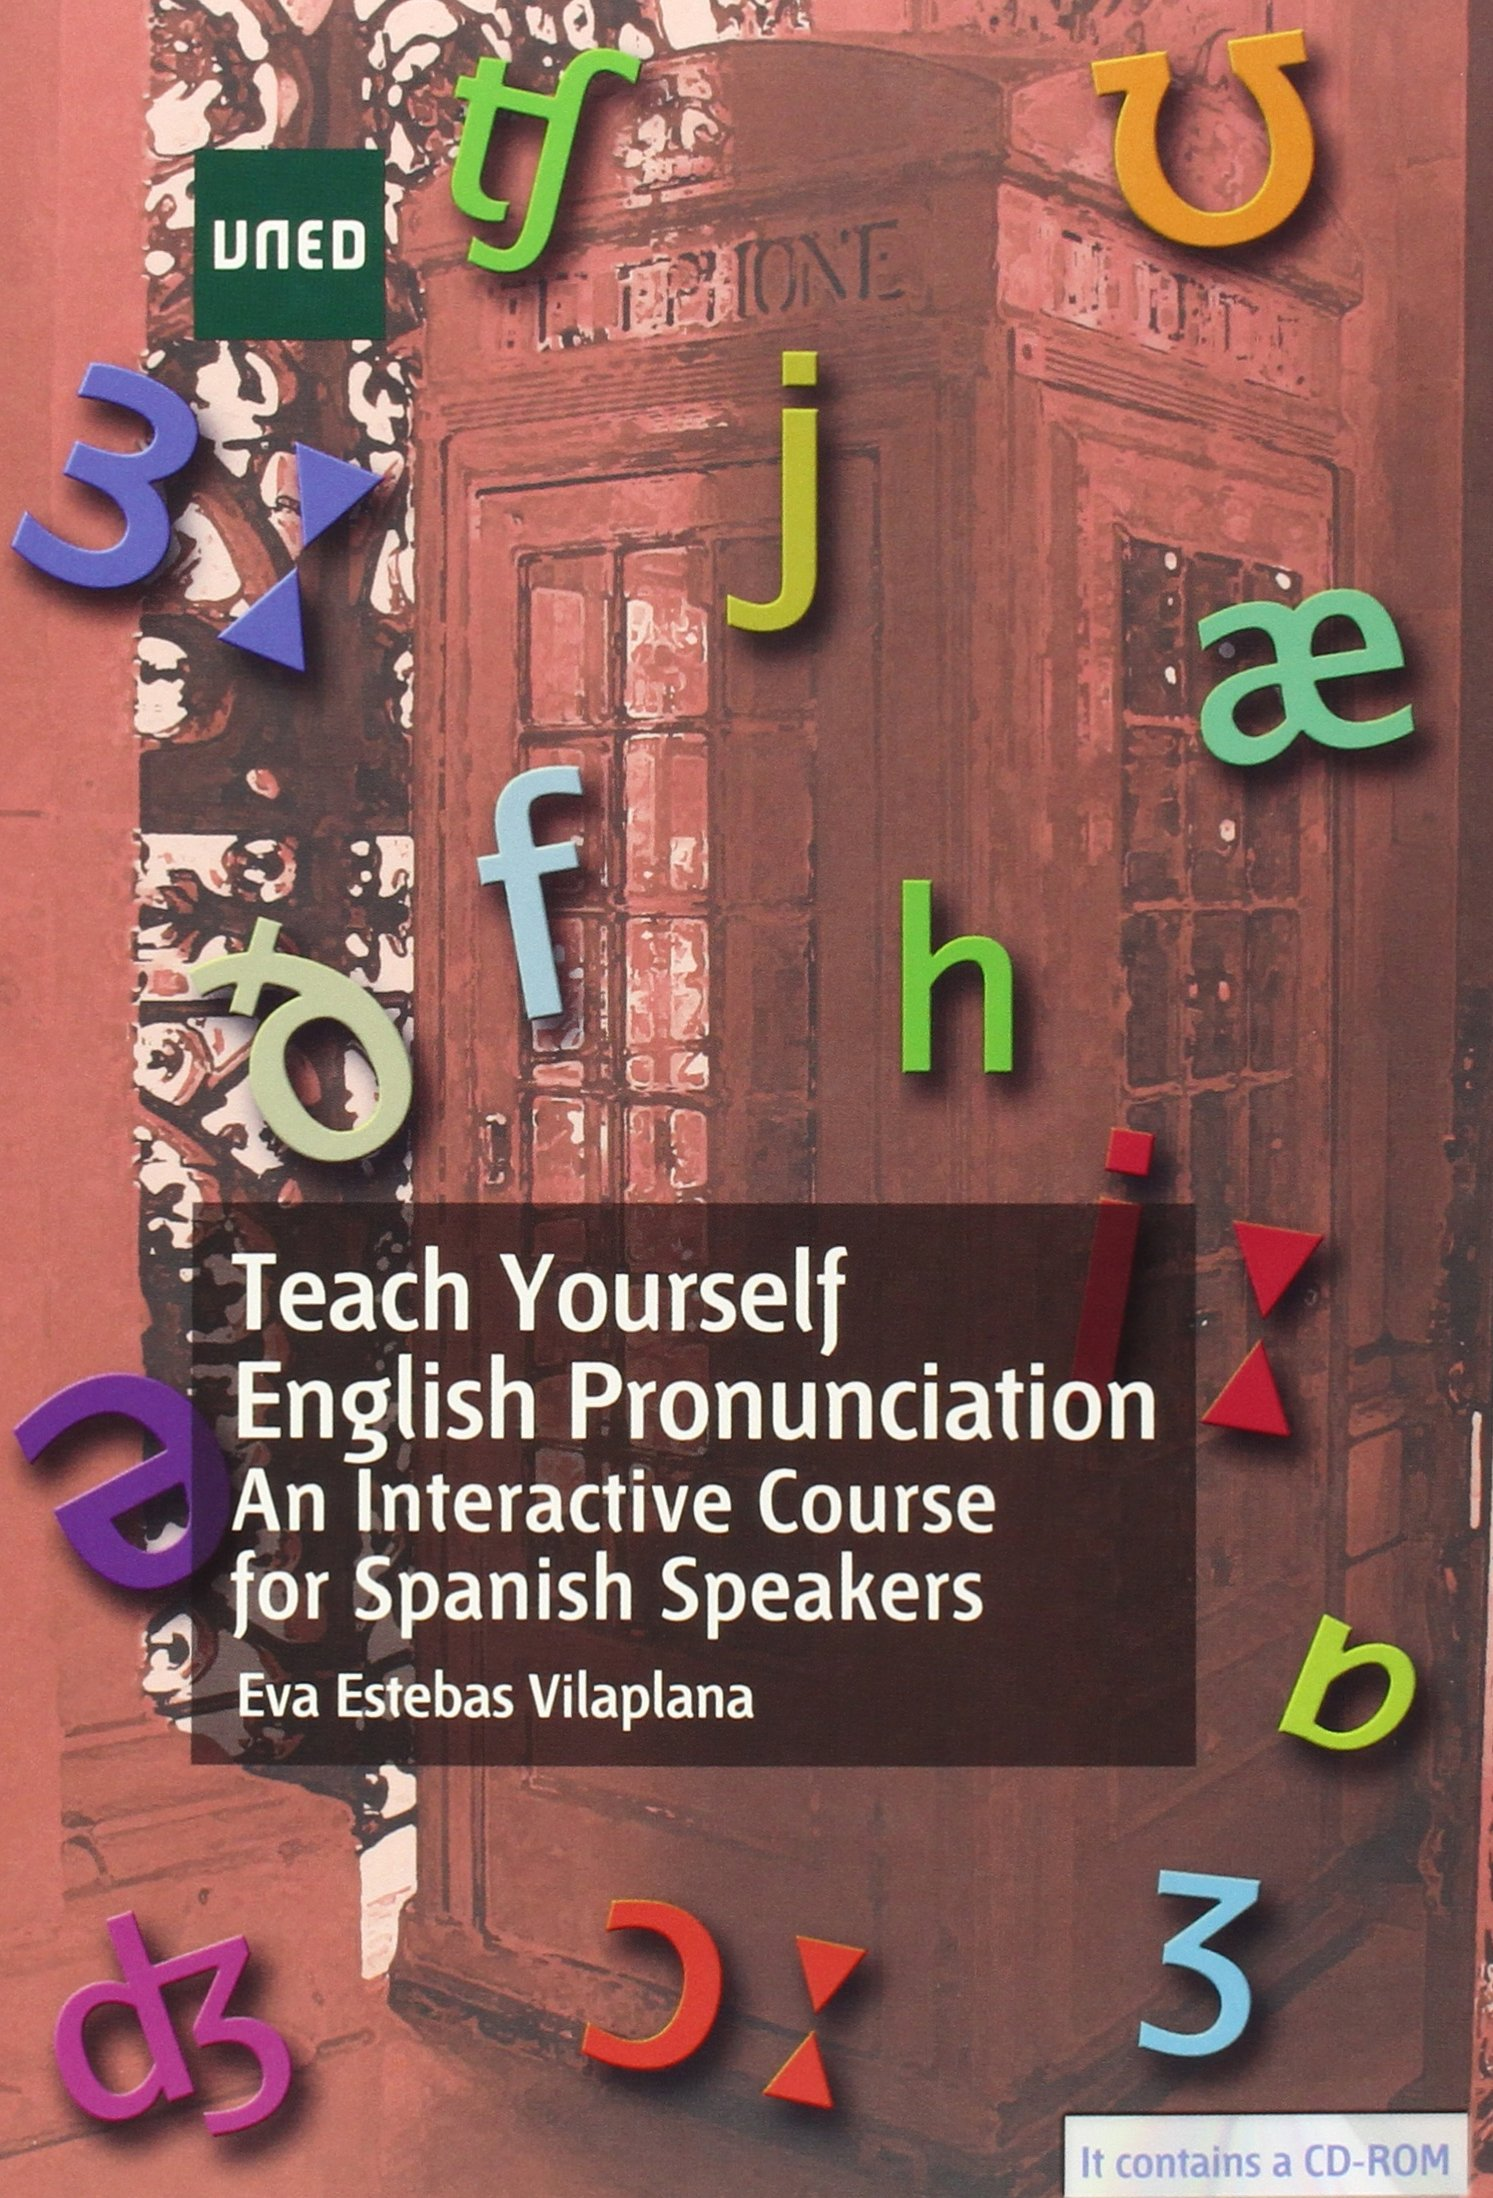 Teach yourself english pronunciation an interactive course for spanish speakers 9788436267488 amazon com books